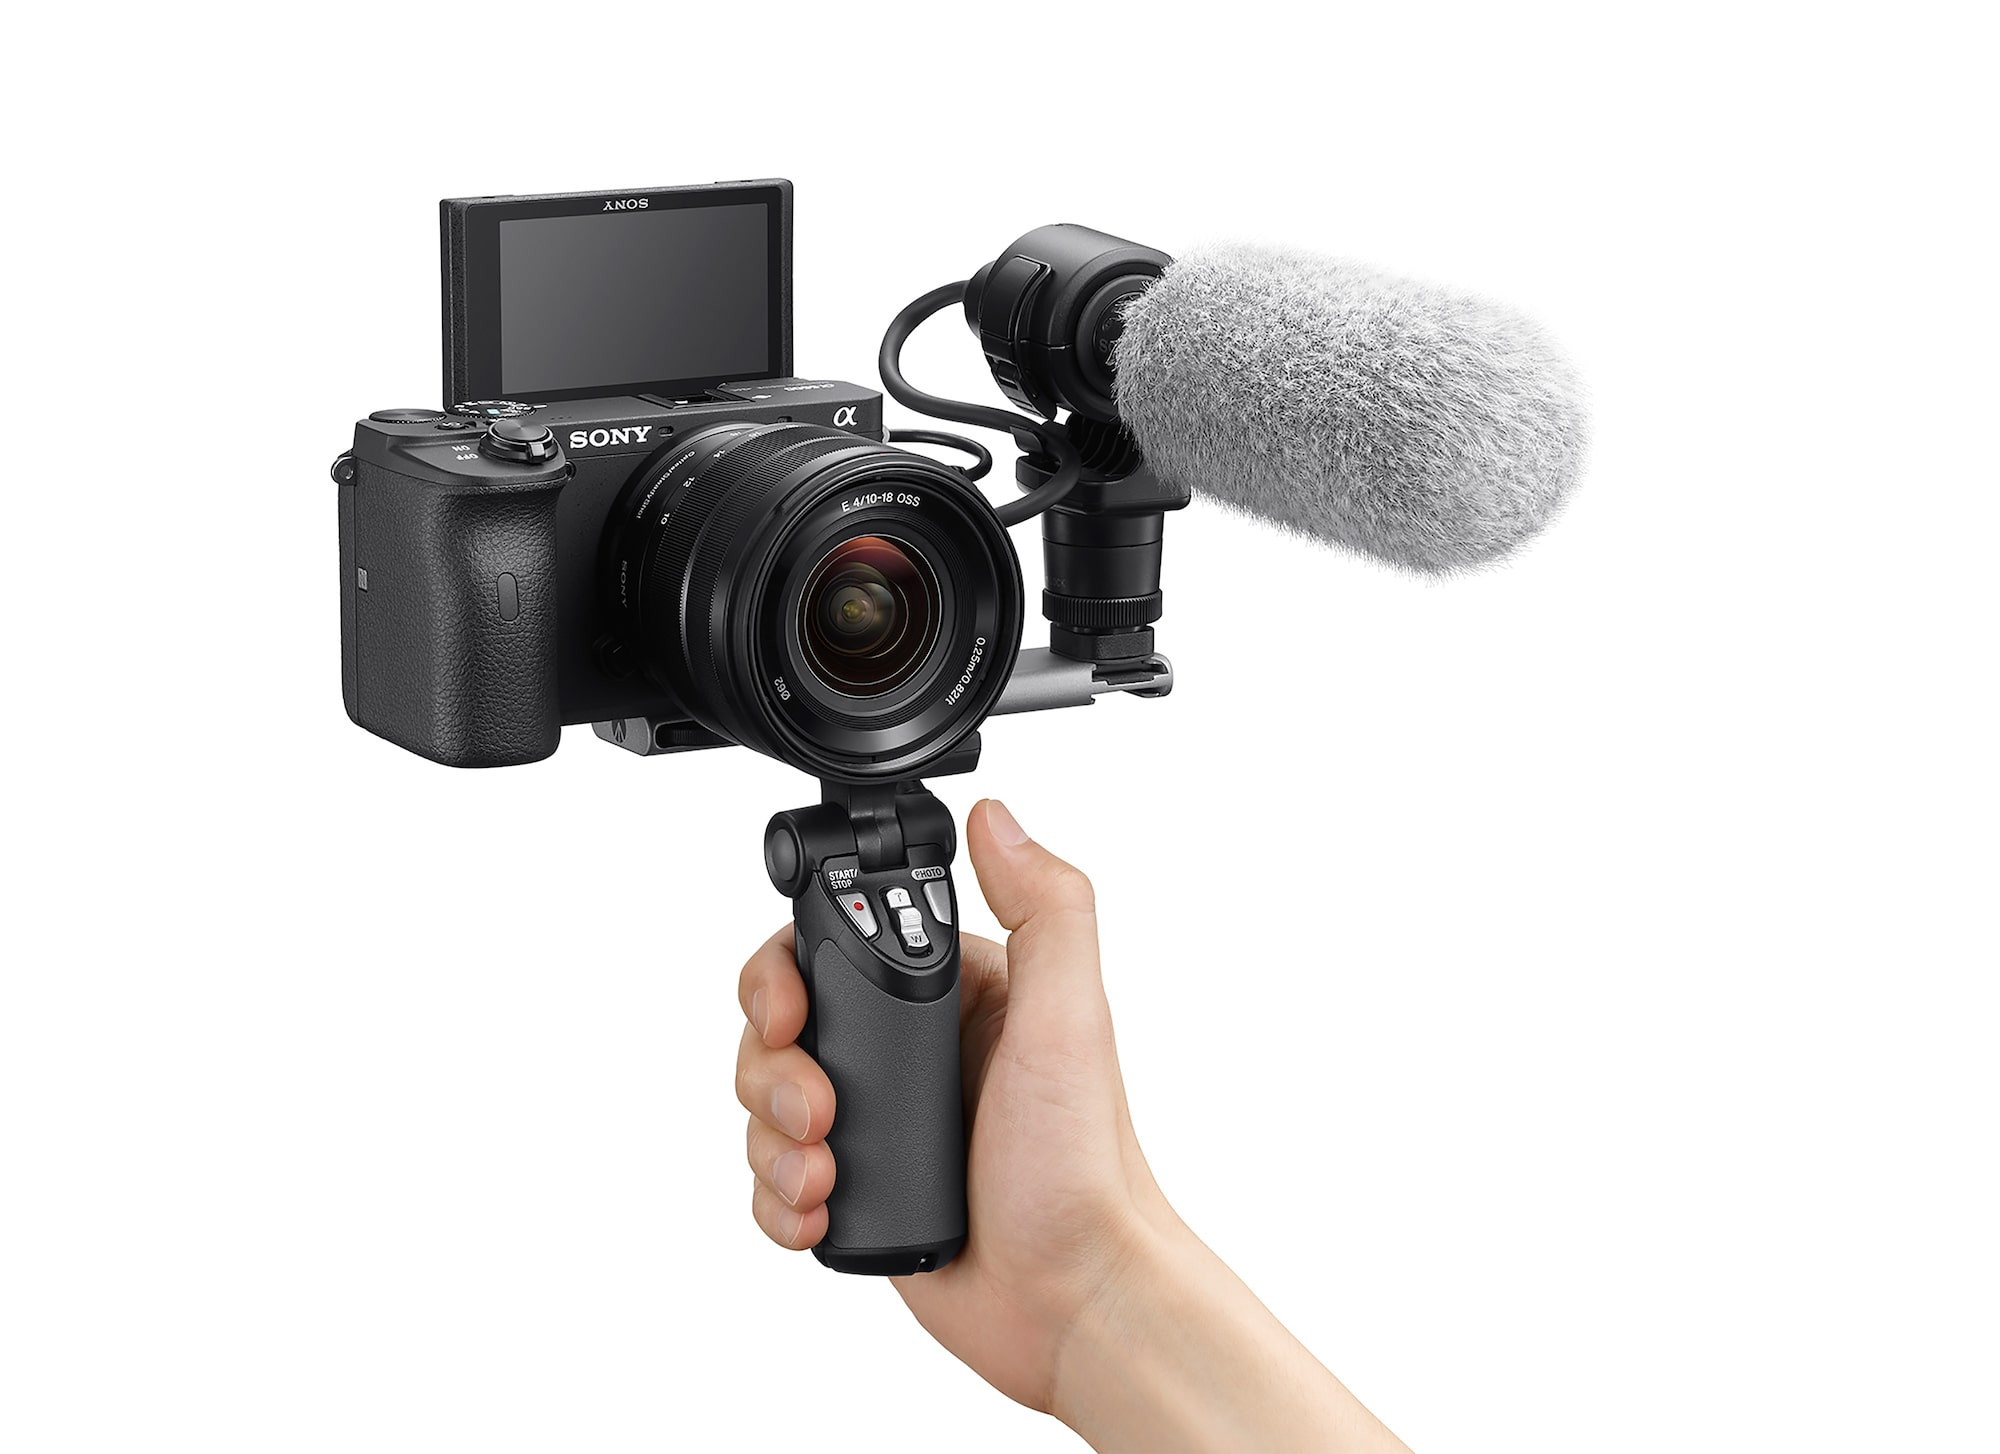 Sony A6600 with microphone attached being held facing the videographer